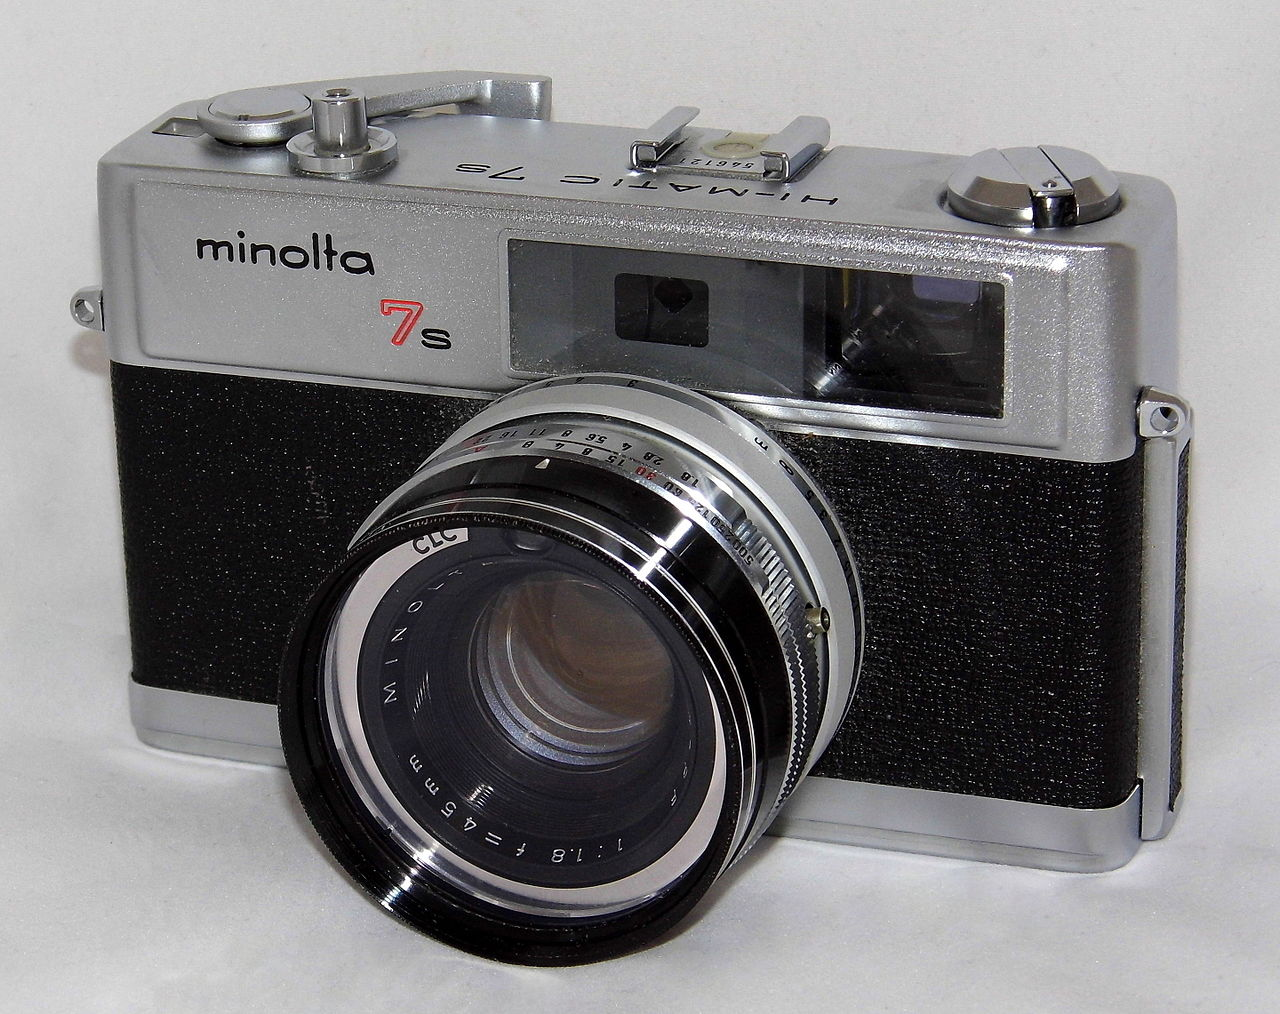 minolta hi matic 7 manual